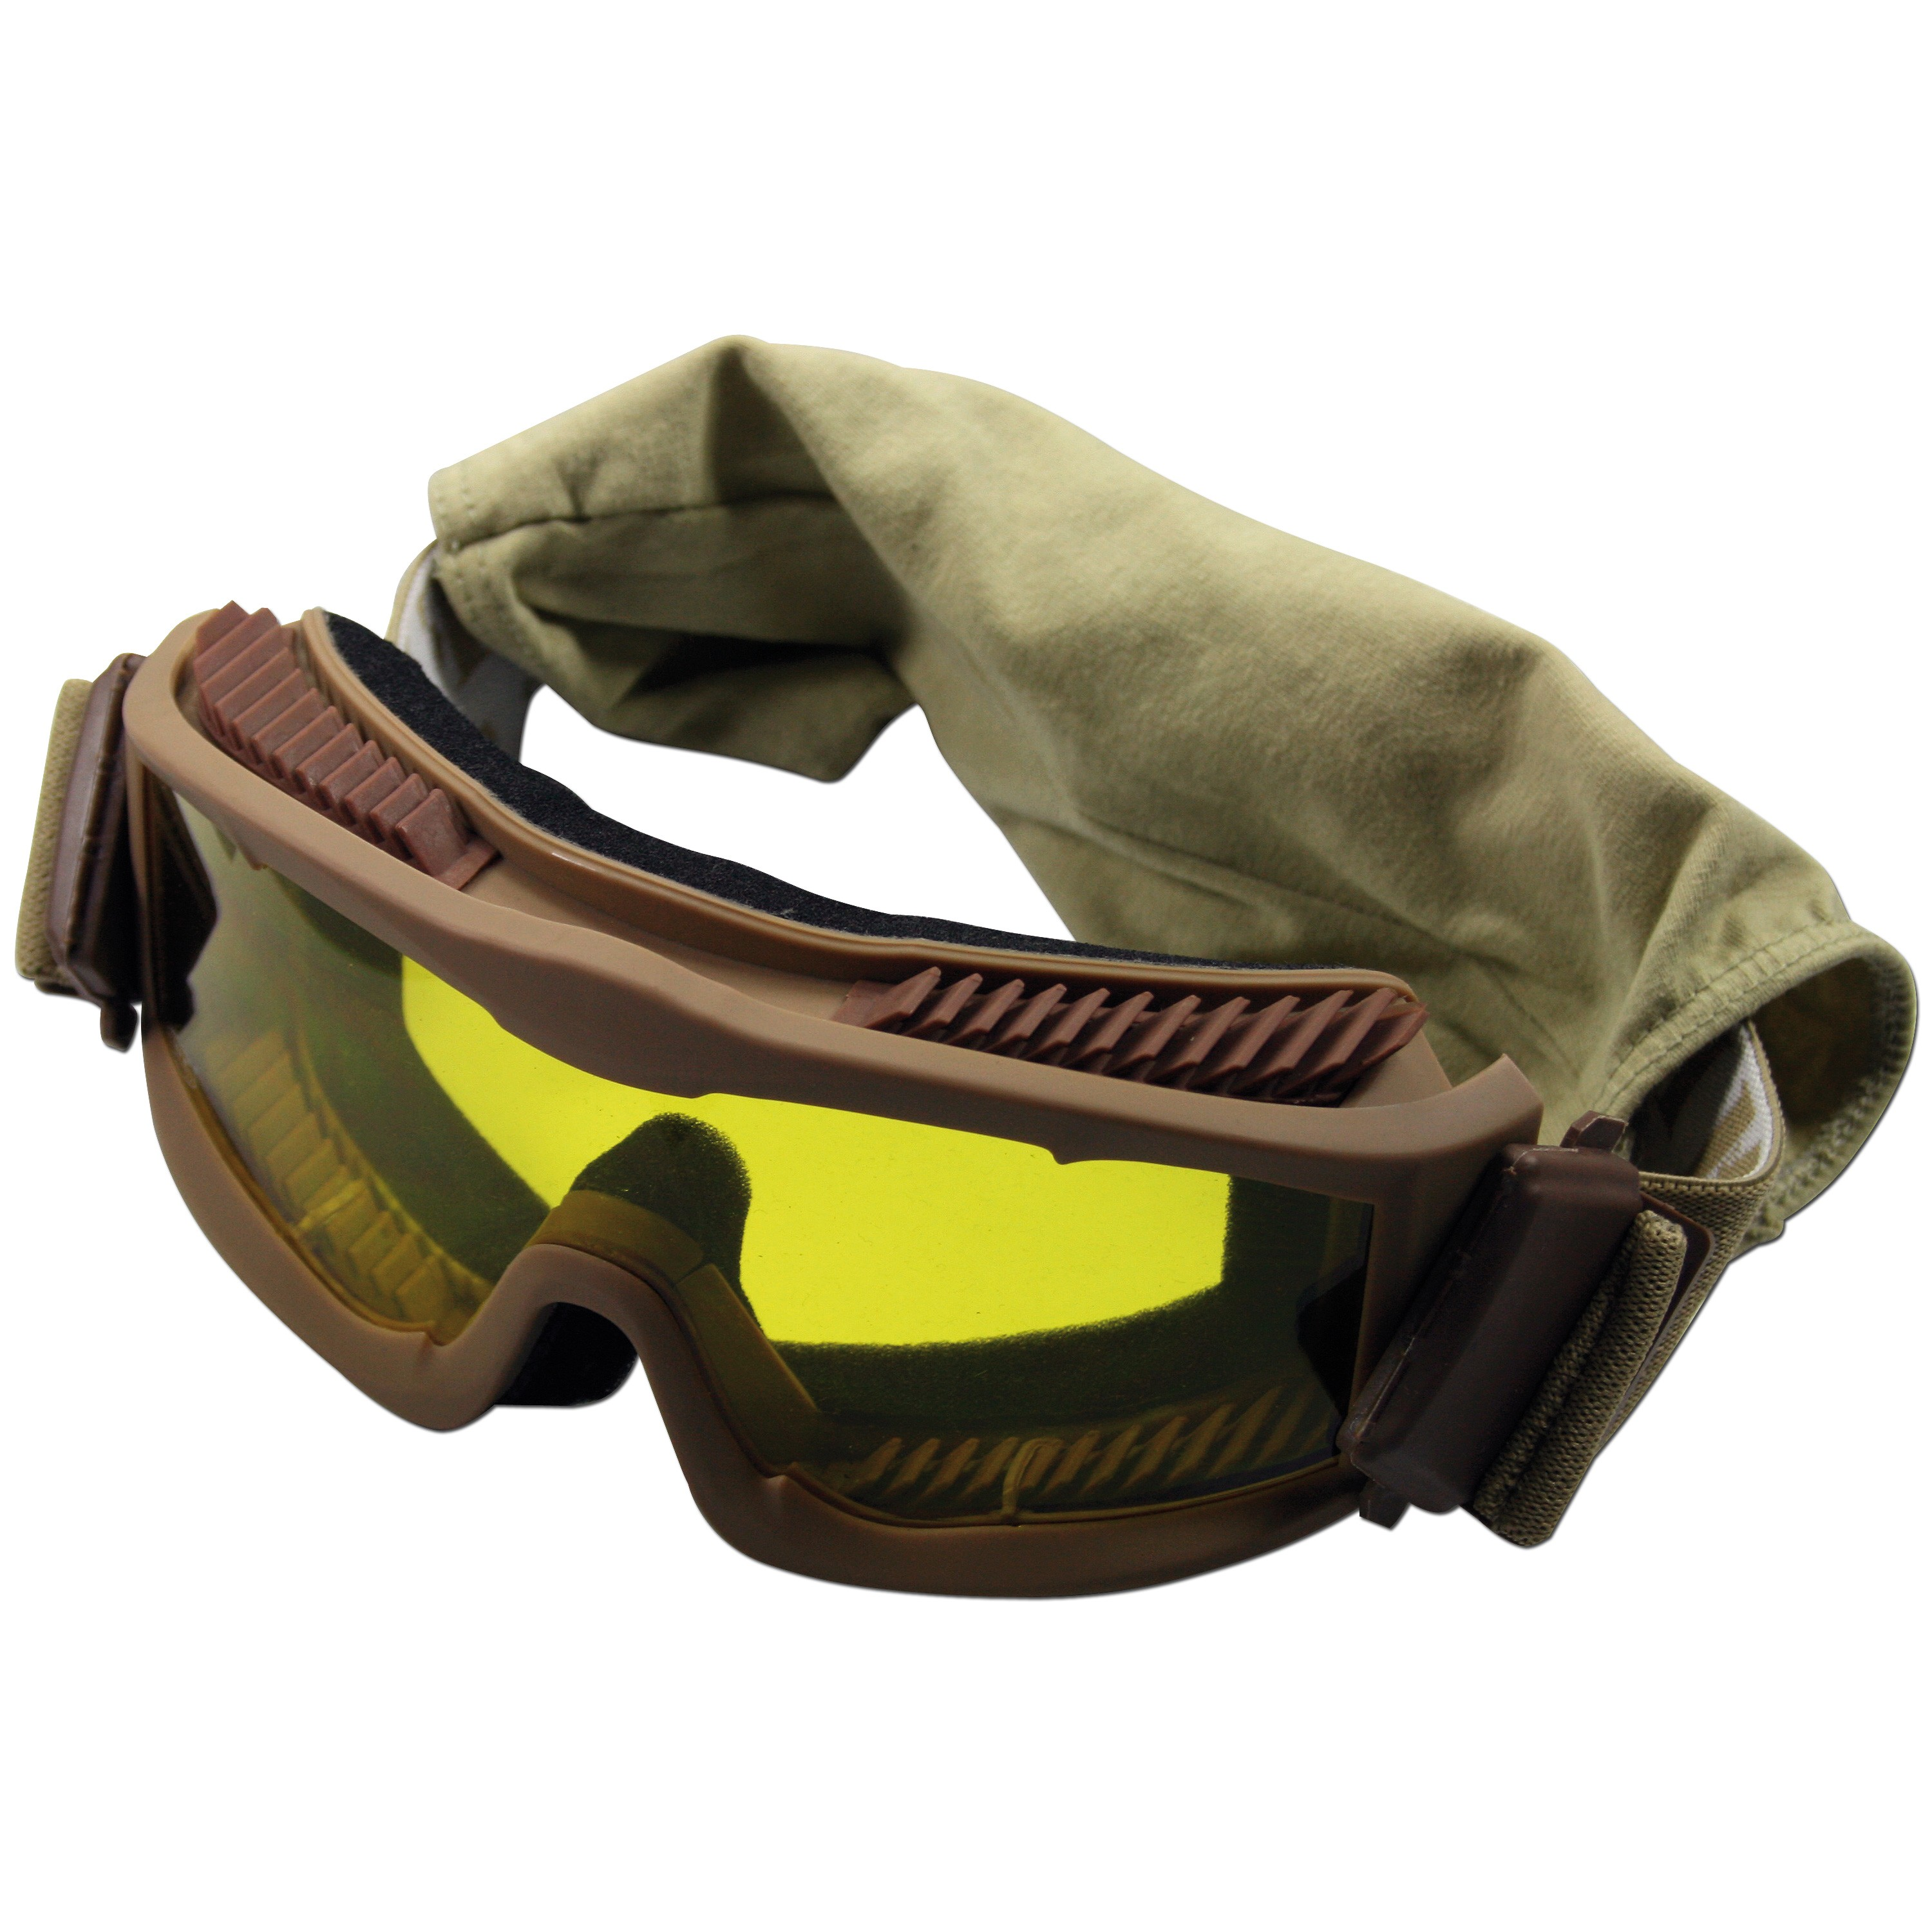 Lunettes de protection Thunder deluxe MFH coyote